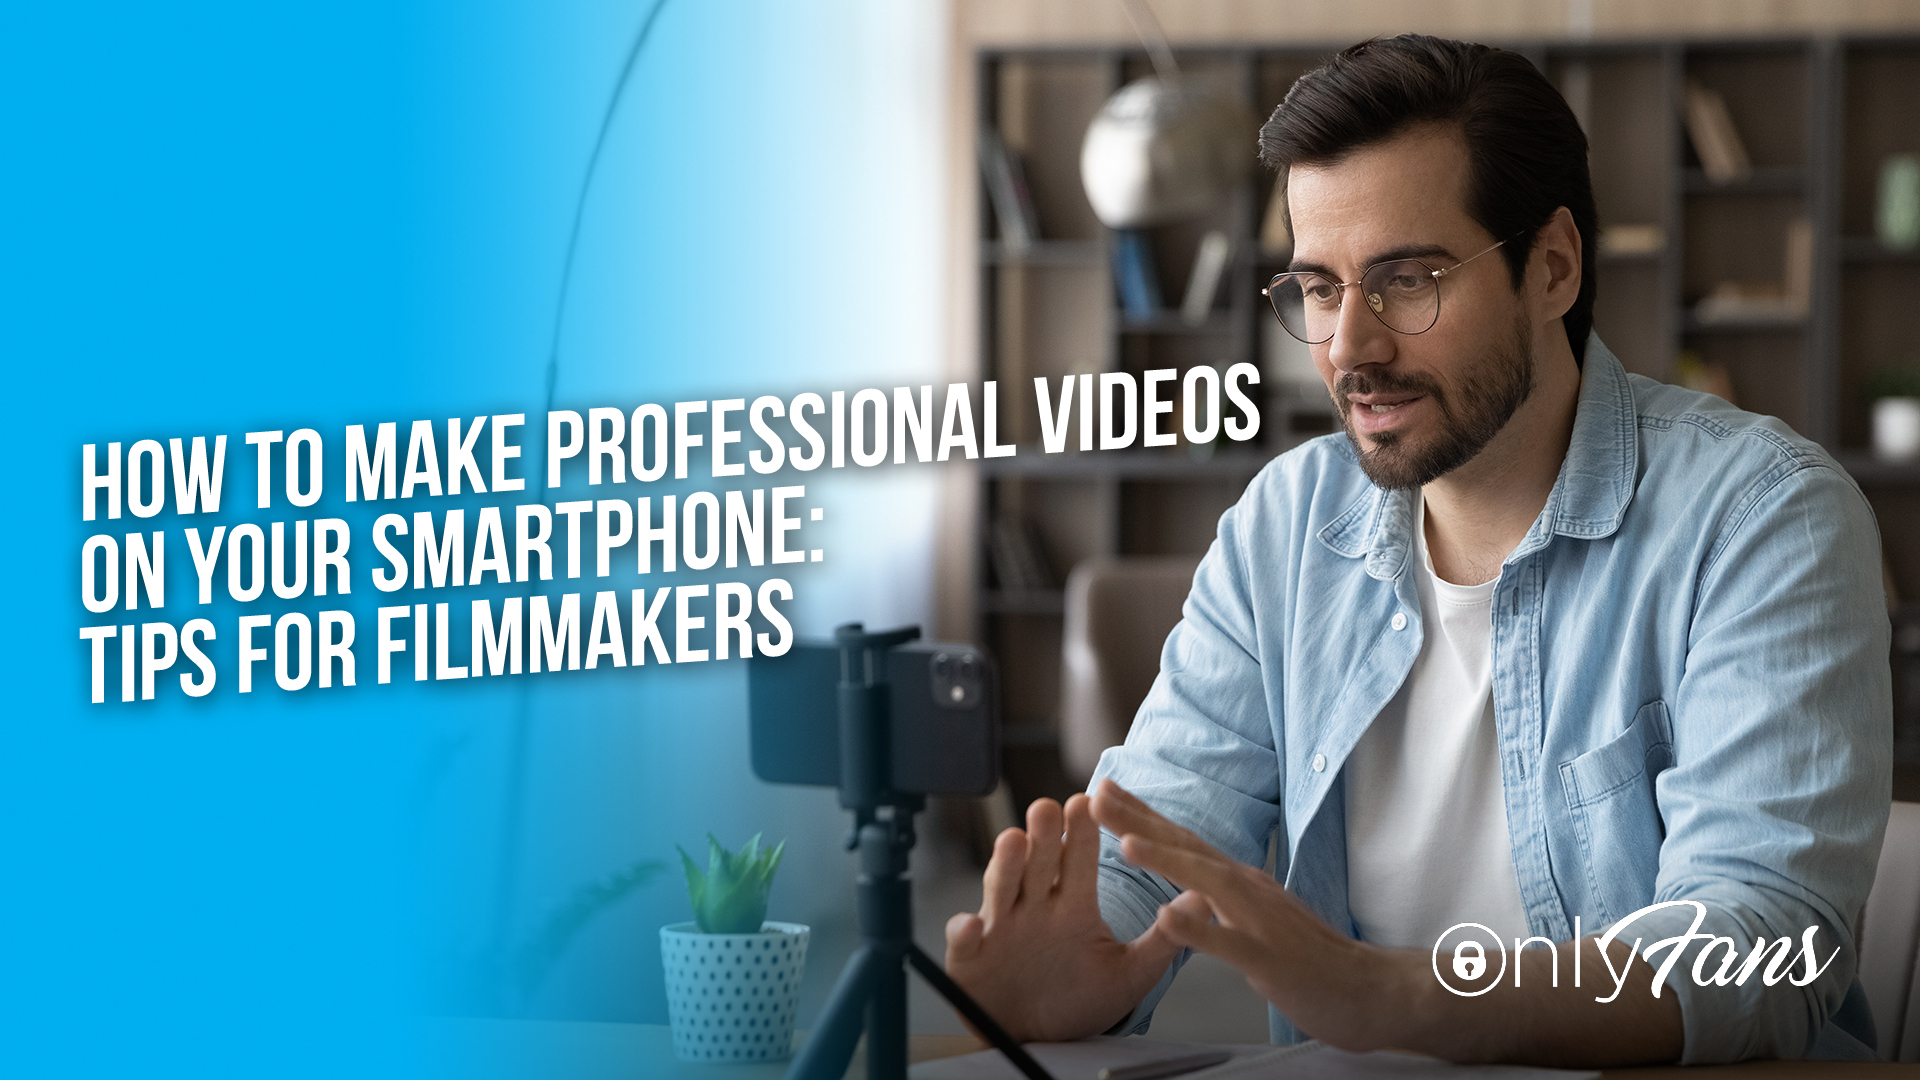 How to make Professional Videos on your Smartphone: Tips for Filmmakers